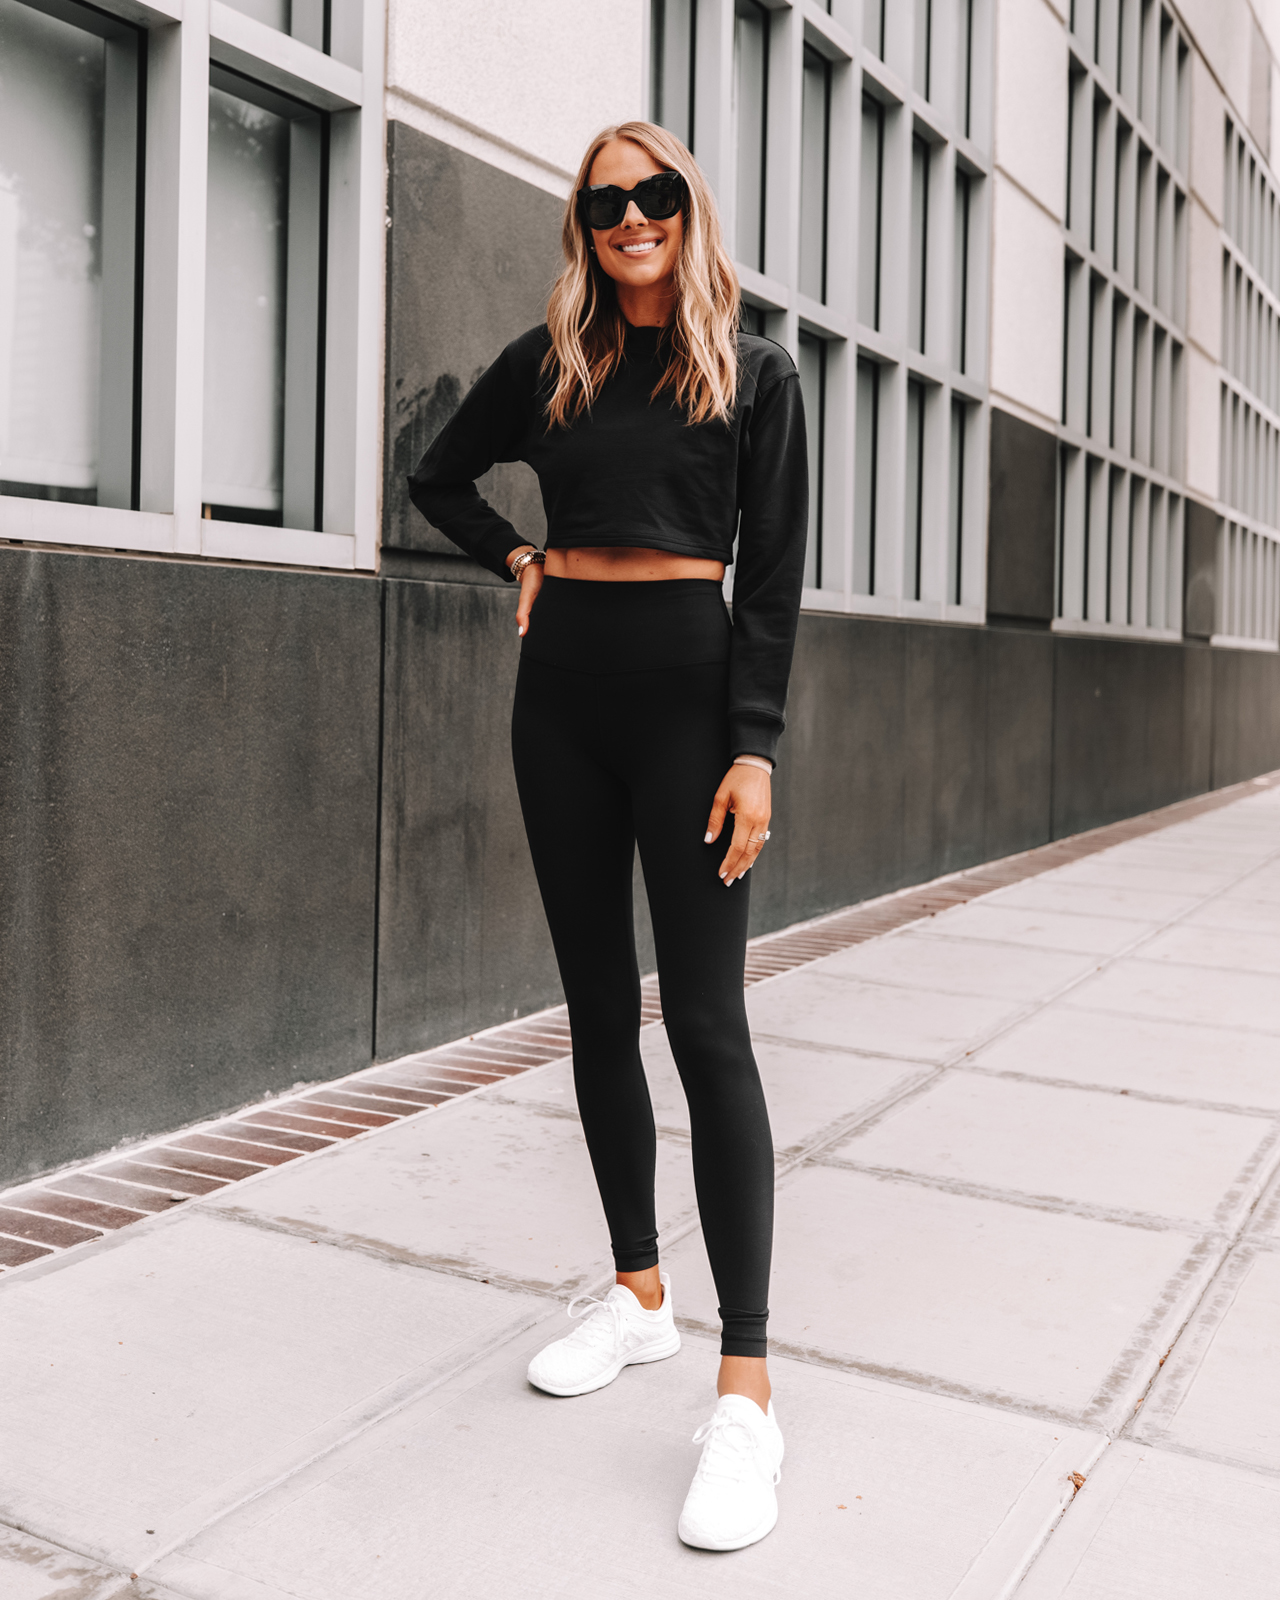 Fashion Jackson Wearing lululemon Black Cropped Sweatshirt lululemon Align Black Leggings APL White Sneakers